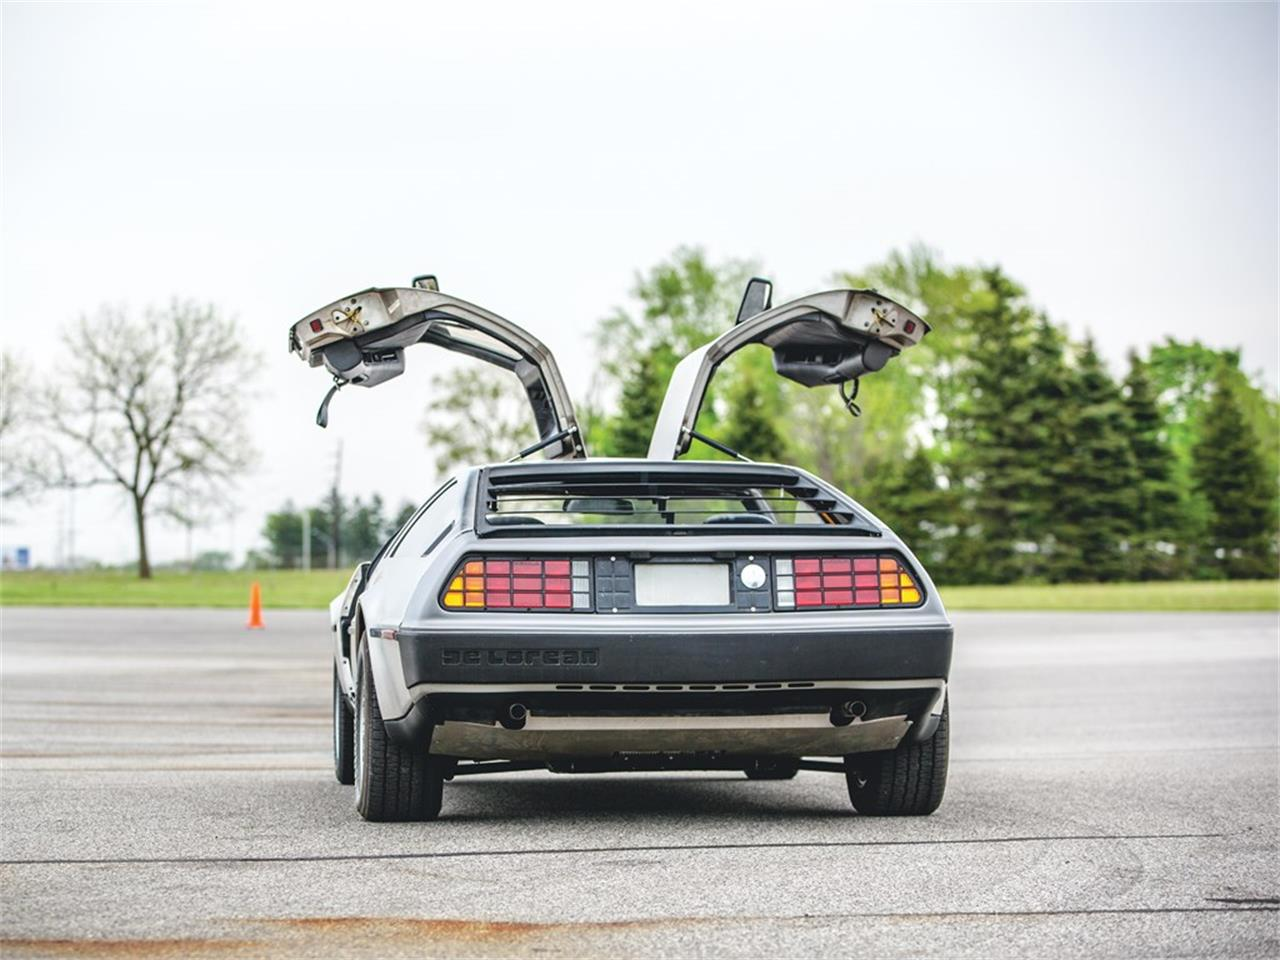 Large Picture of 1981 DeLorean DMC-12 located in Indiana Offered by RM Sotheby's - Q55A